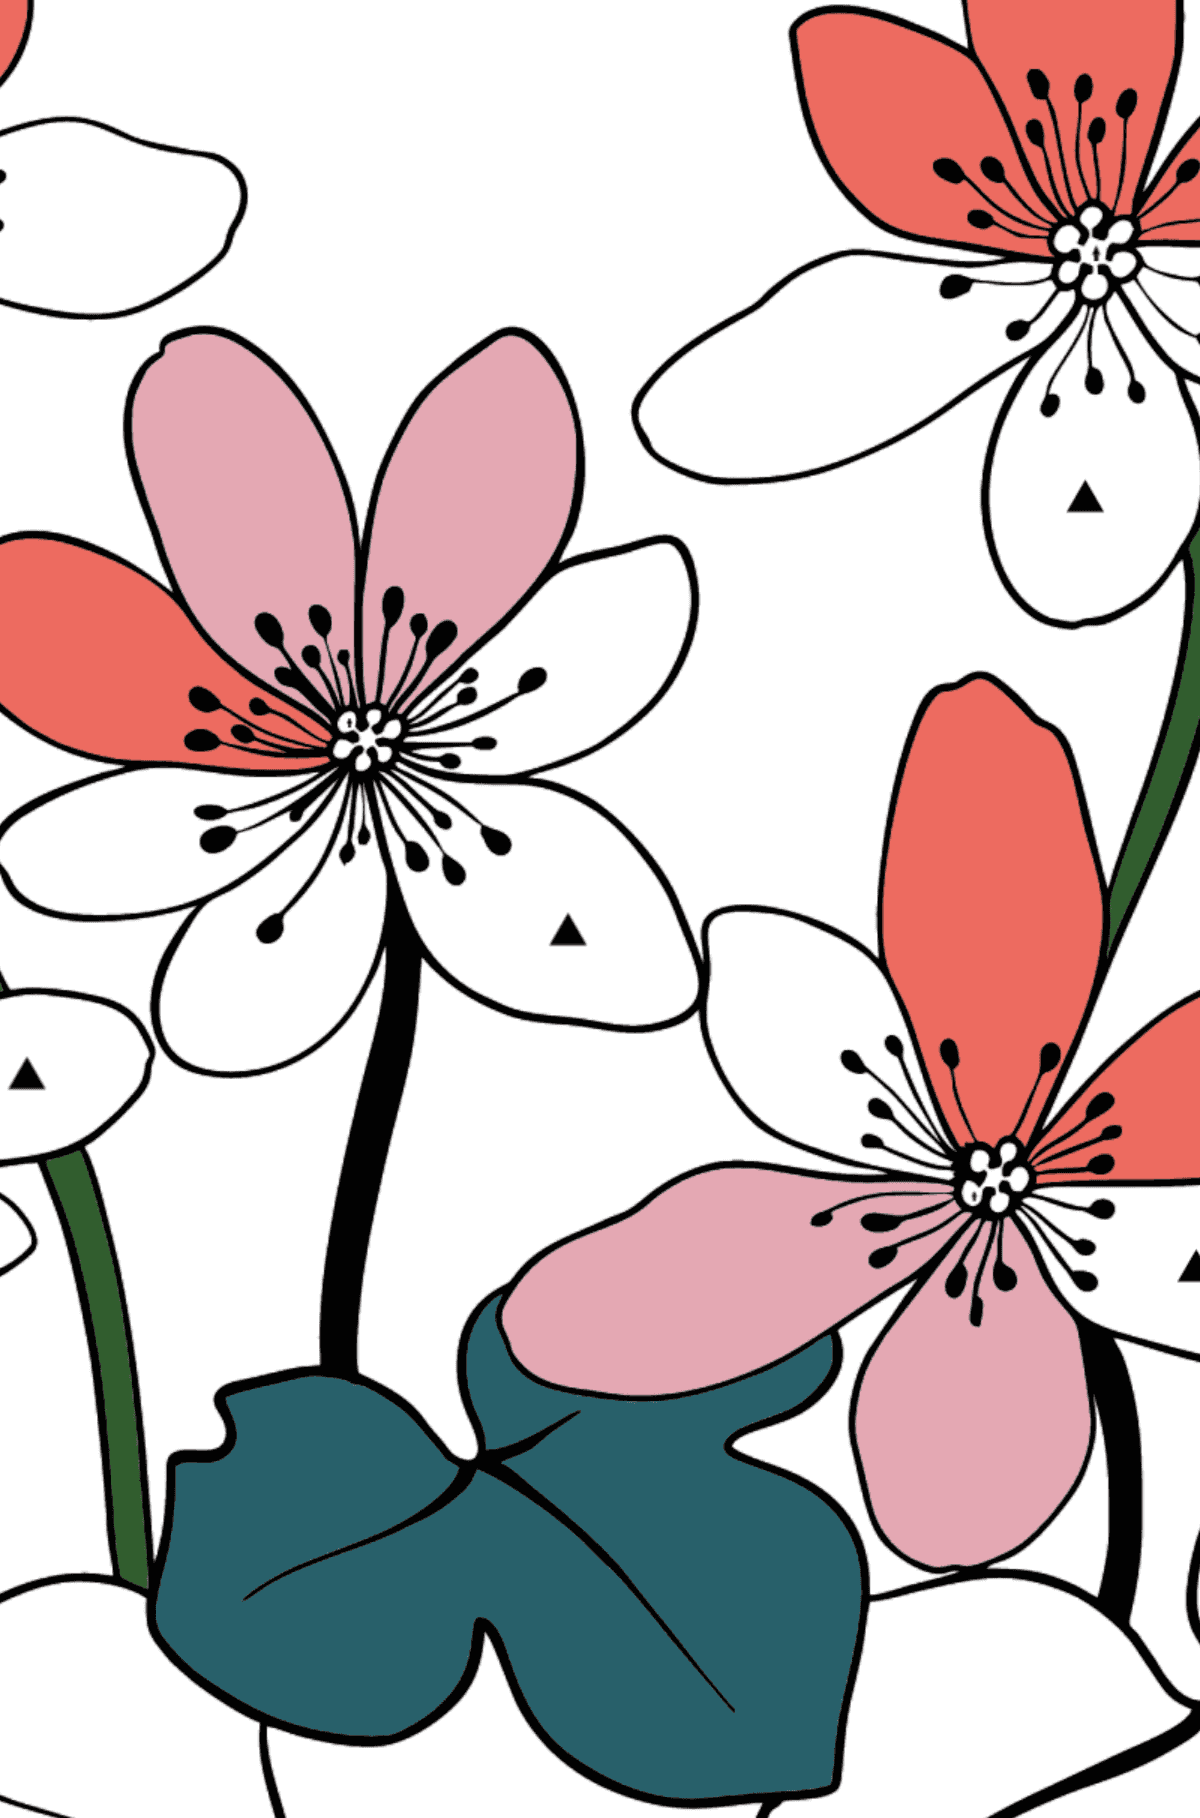 Flower Coloring Page - Hepatica - Coloring by Symbols and Geometric Shapes for Kids